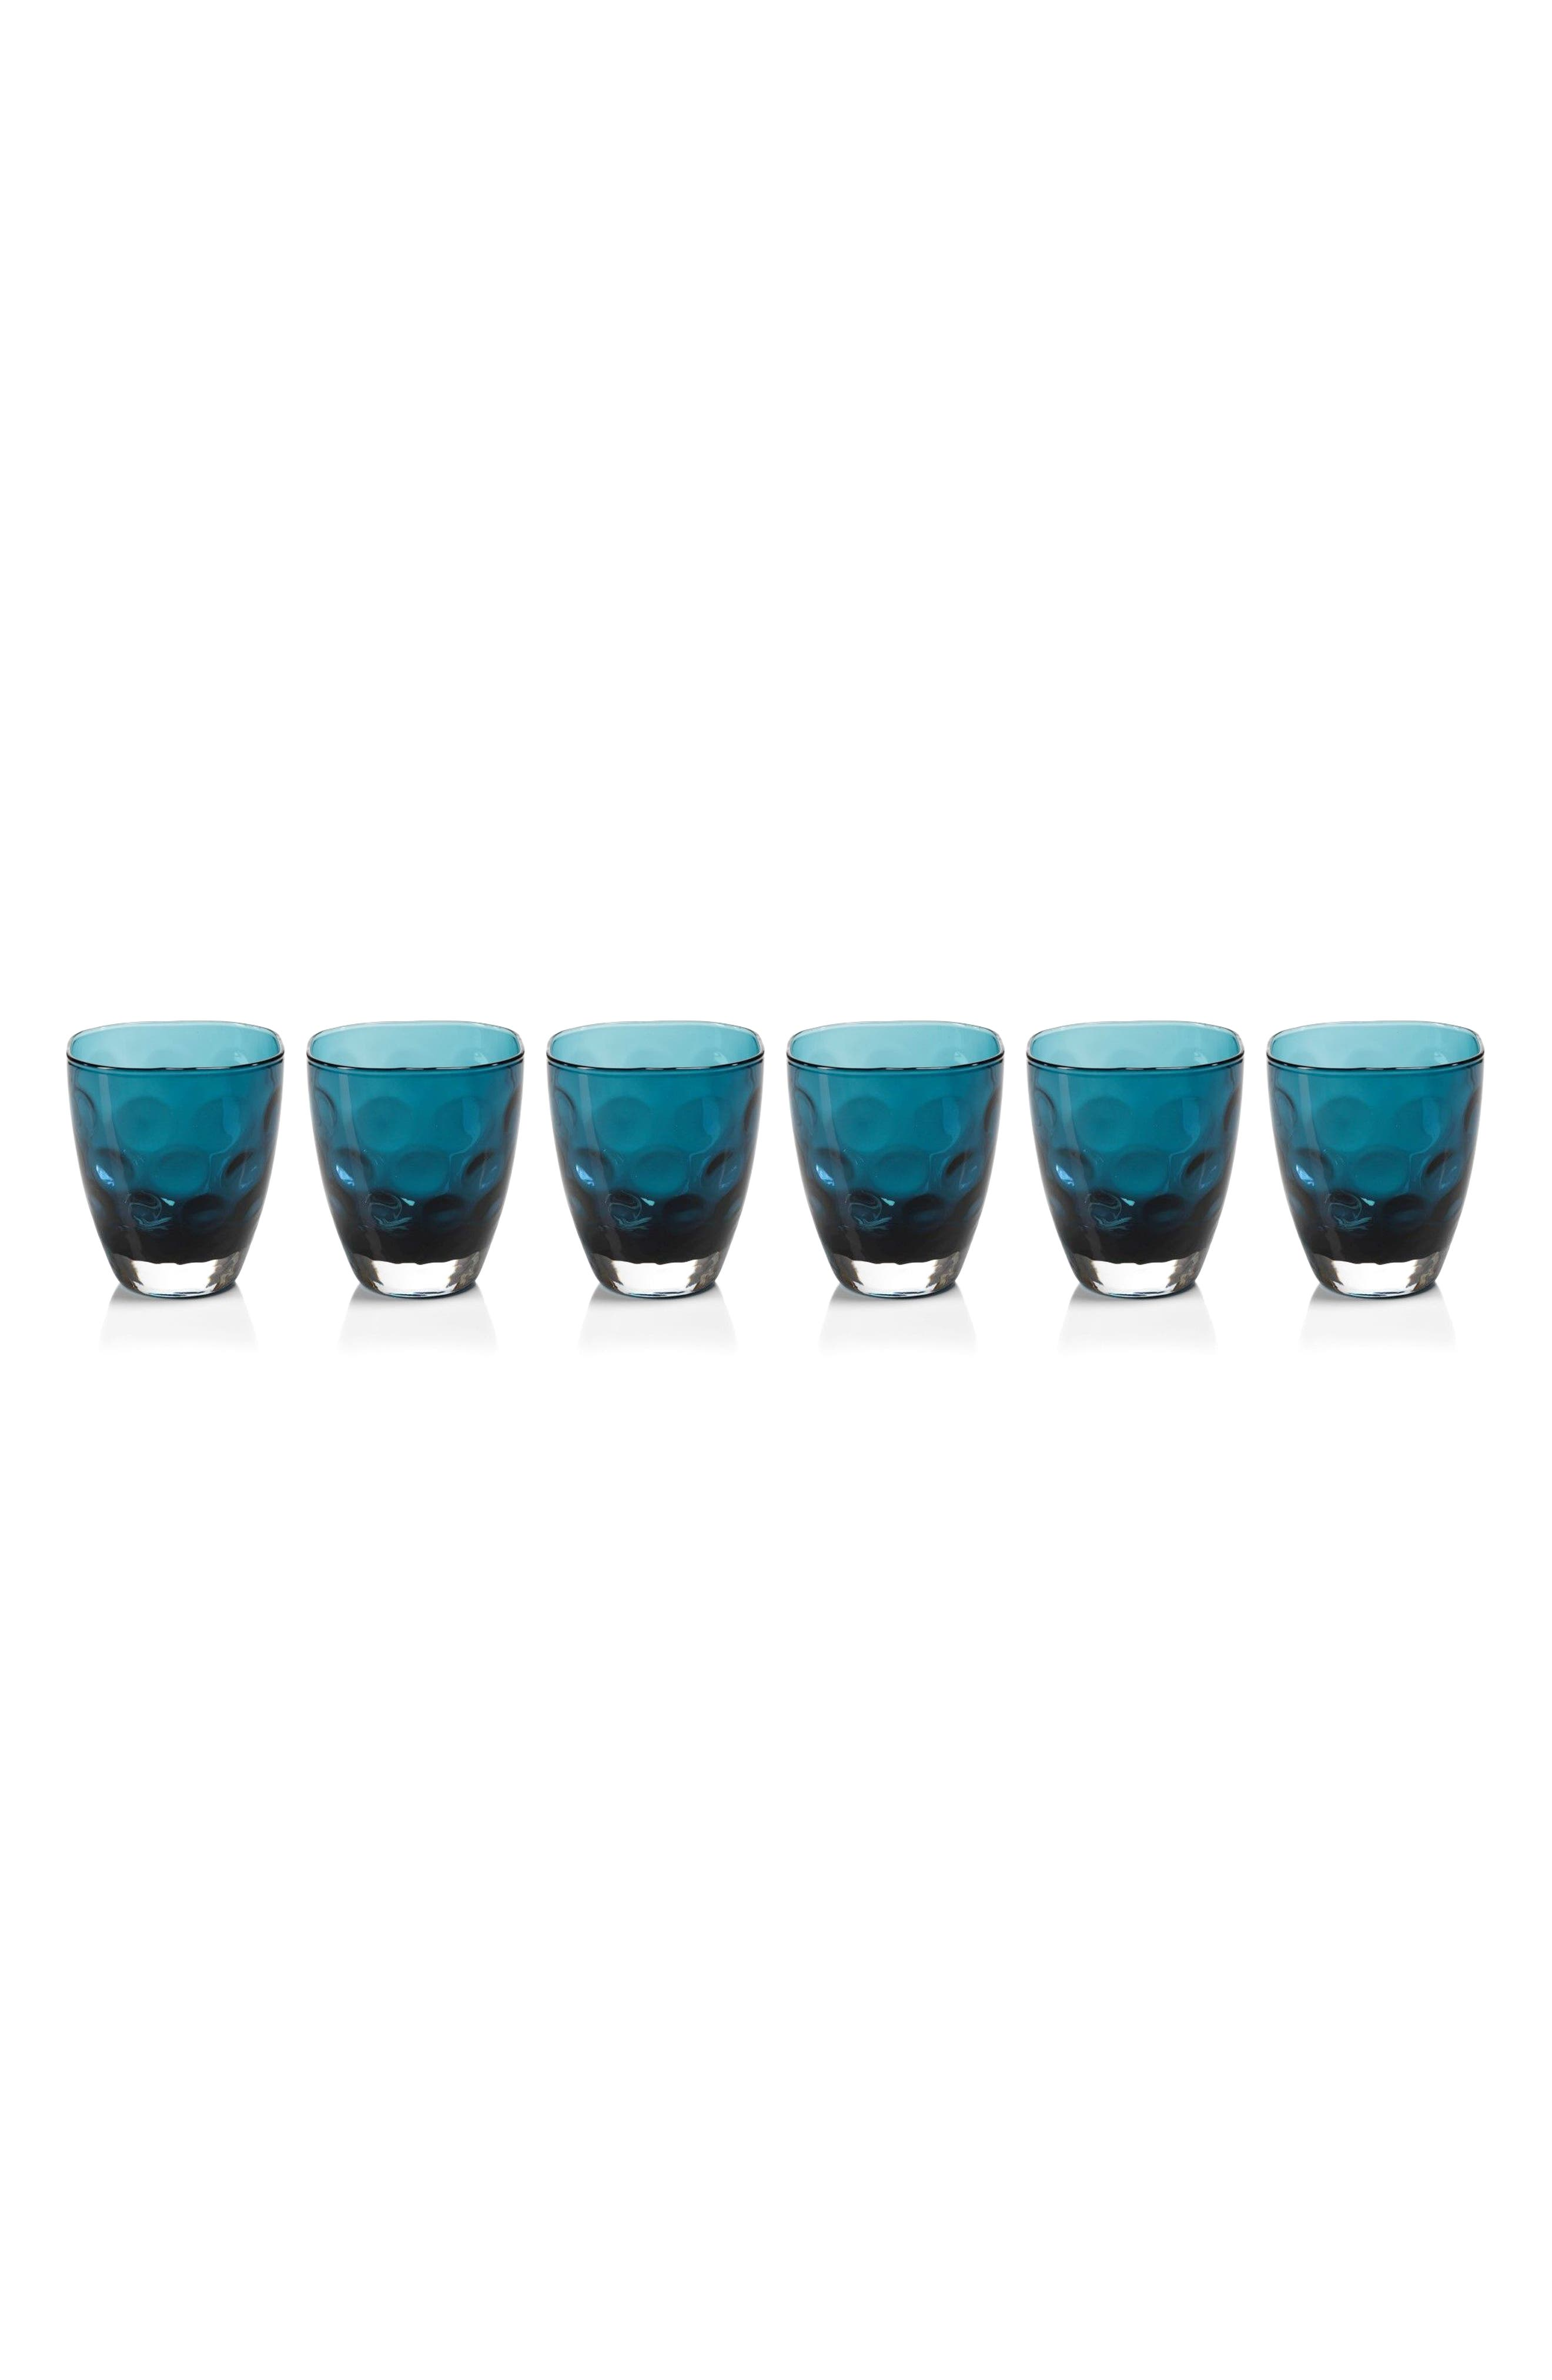 Main Image - Zodax Dimpled Set of 6 Double Old Fashioned Glasses